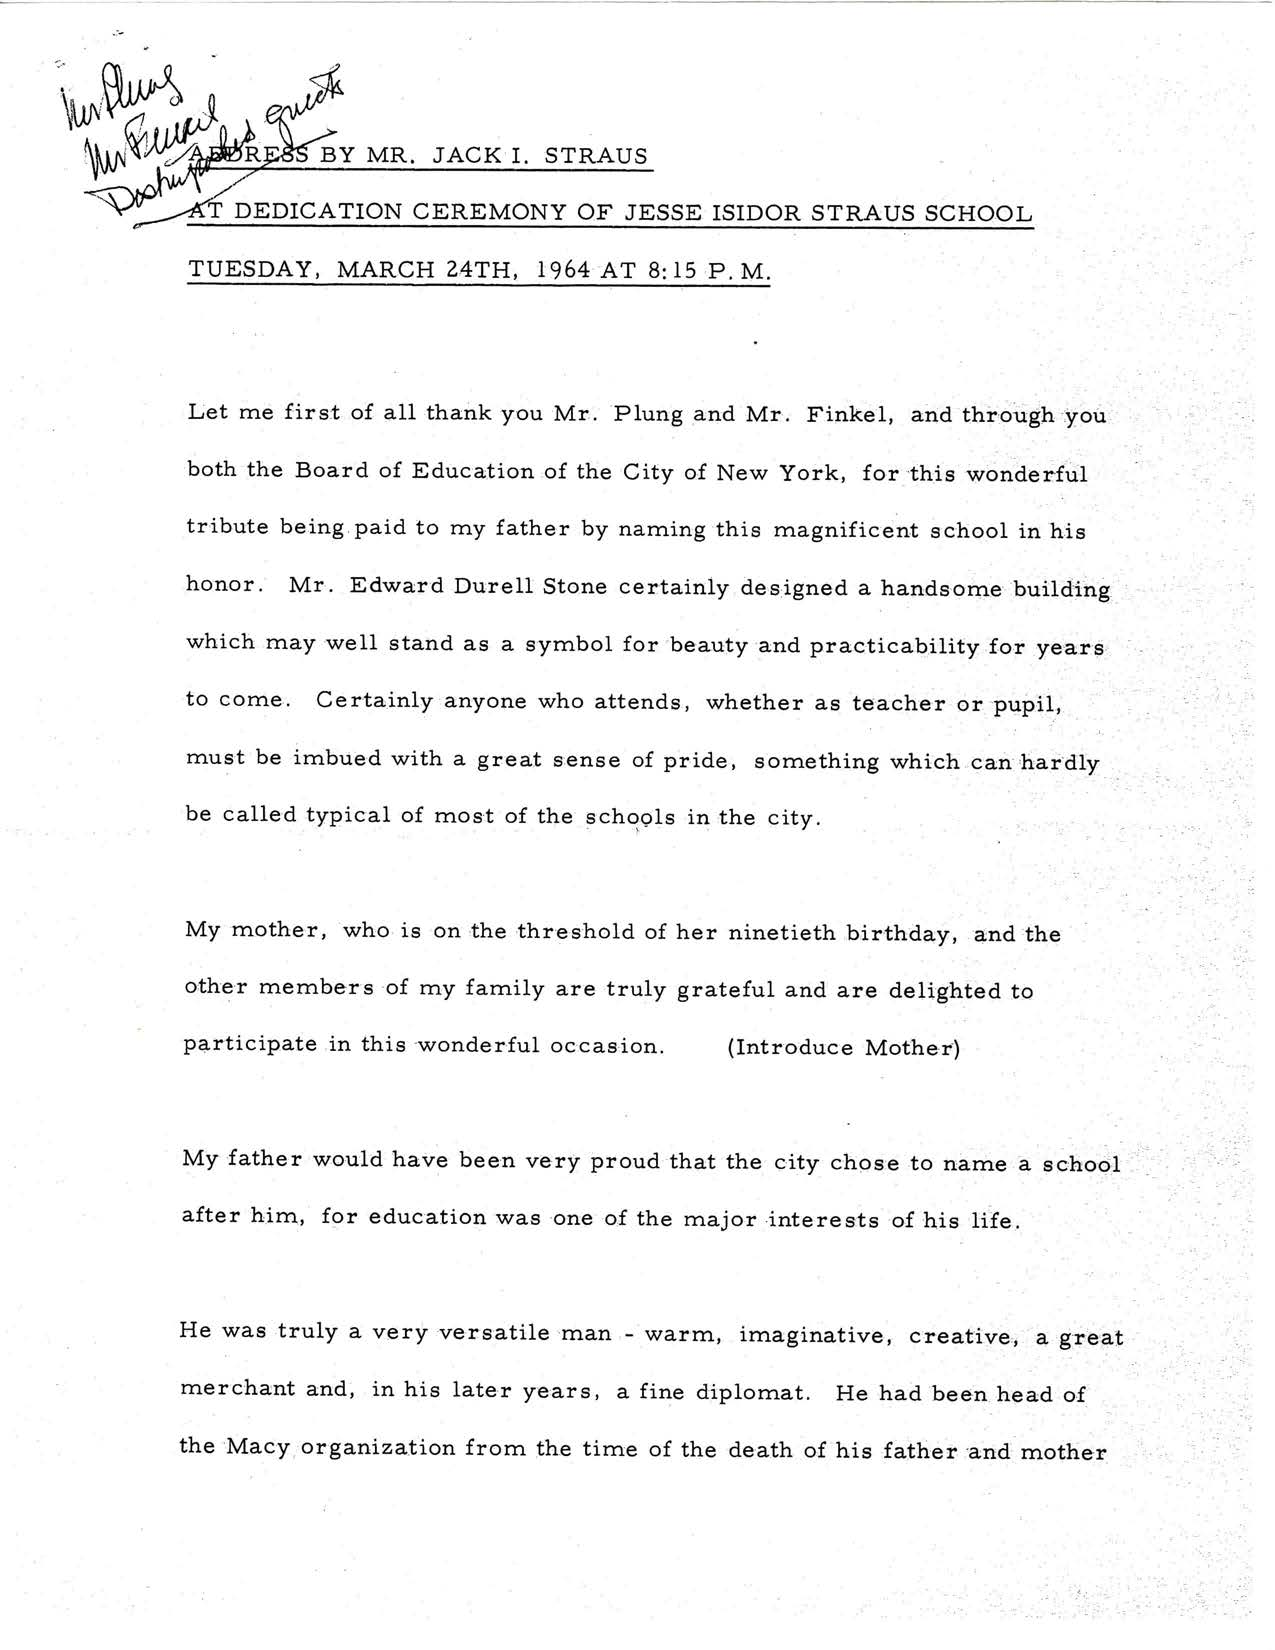 Jack I Straus Dedication Address - 24 March 1964